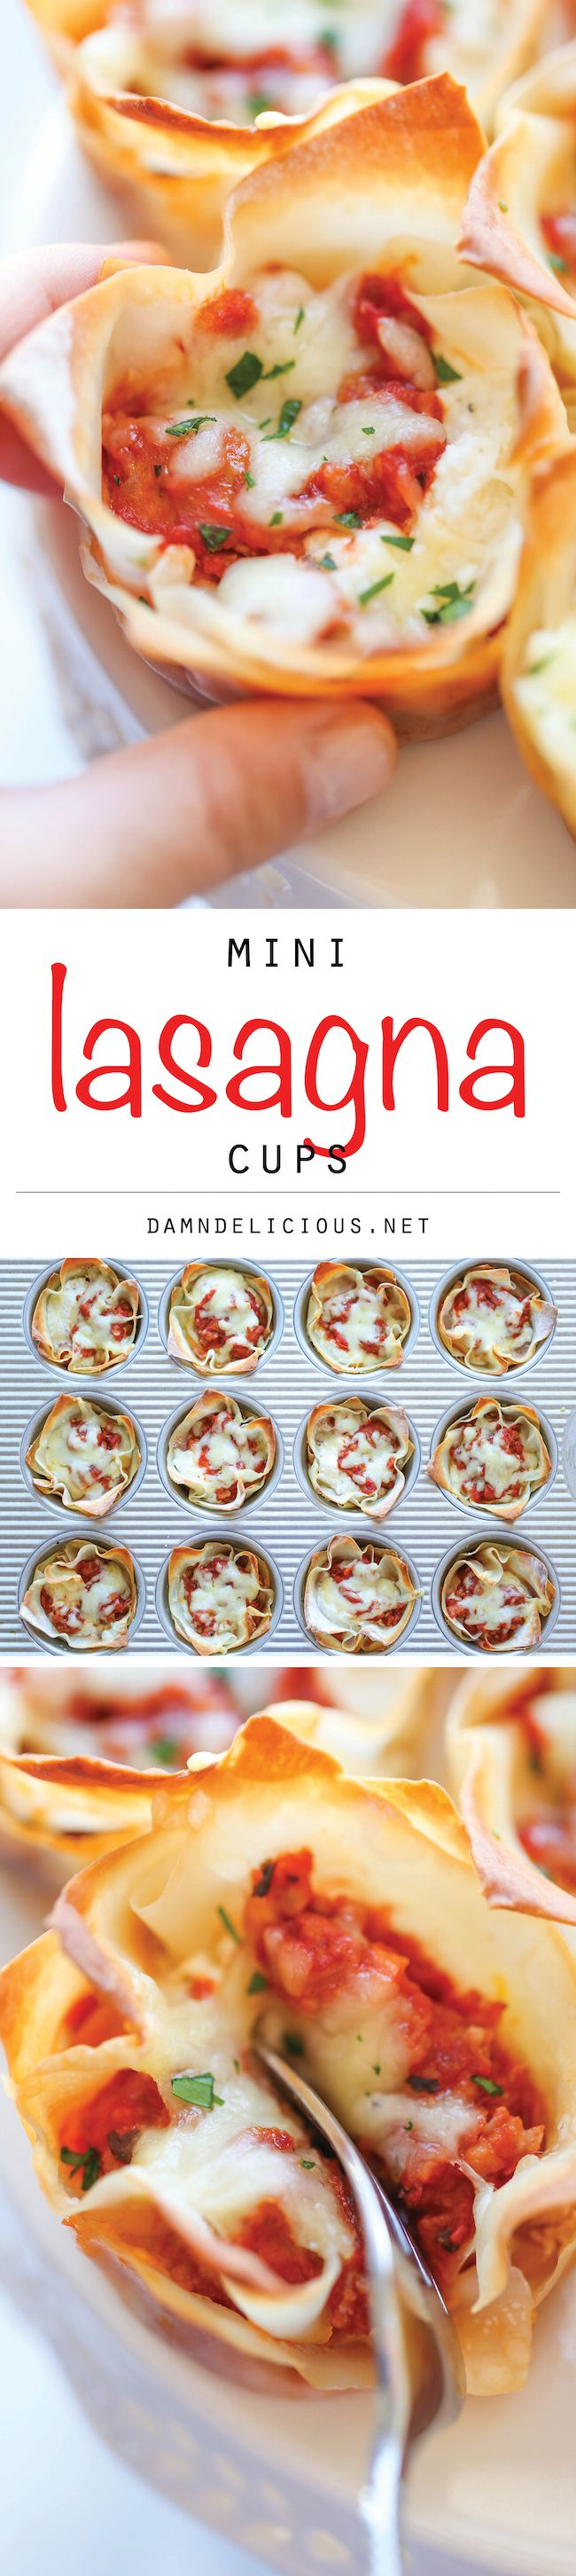 Mini Lasagna Cups – The easiest, simplest lasagna you will ever make, conveniently made into single-serving portions!